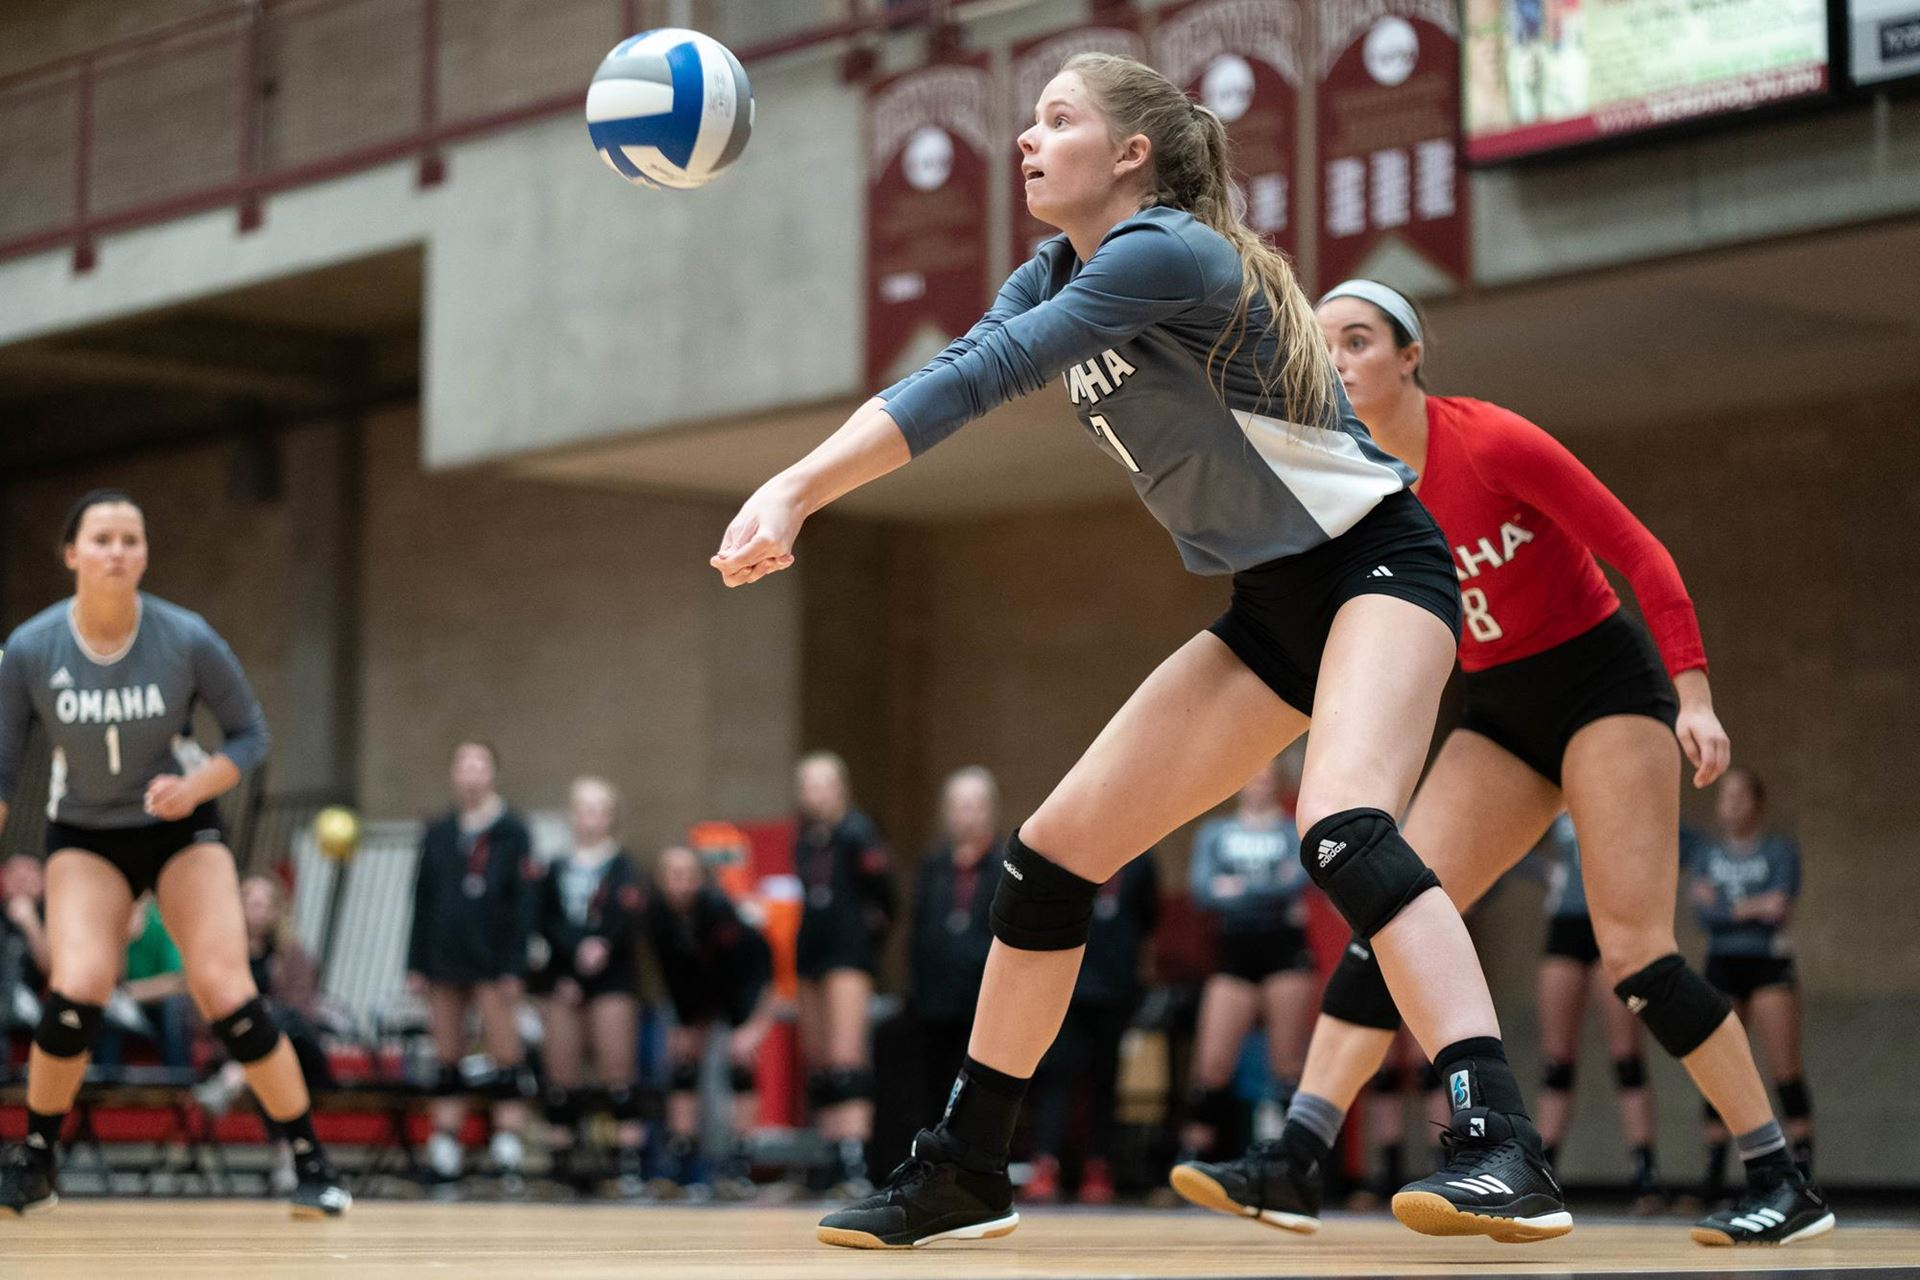 An Omaha volleyball player hits the ball